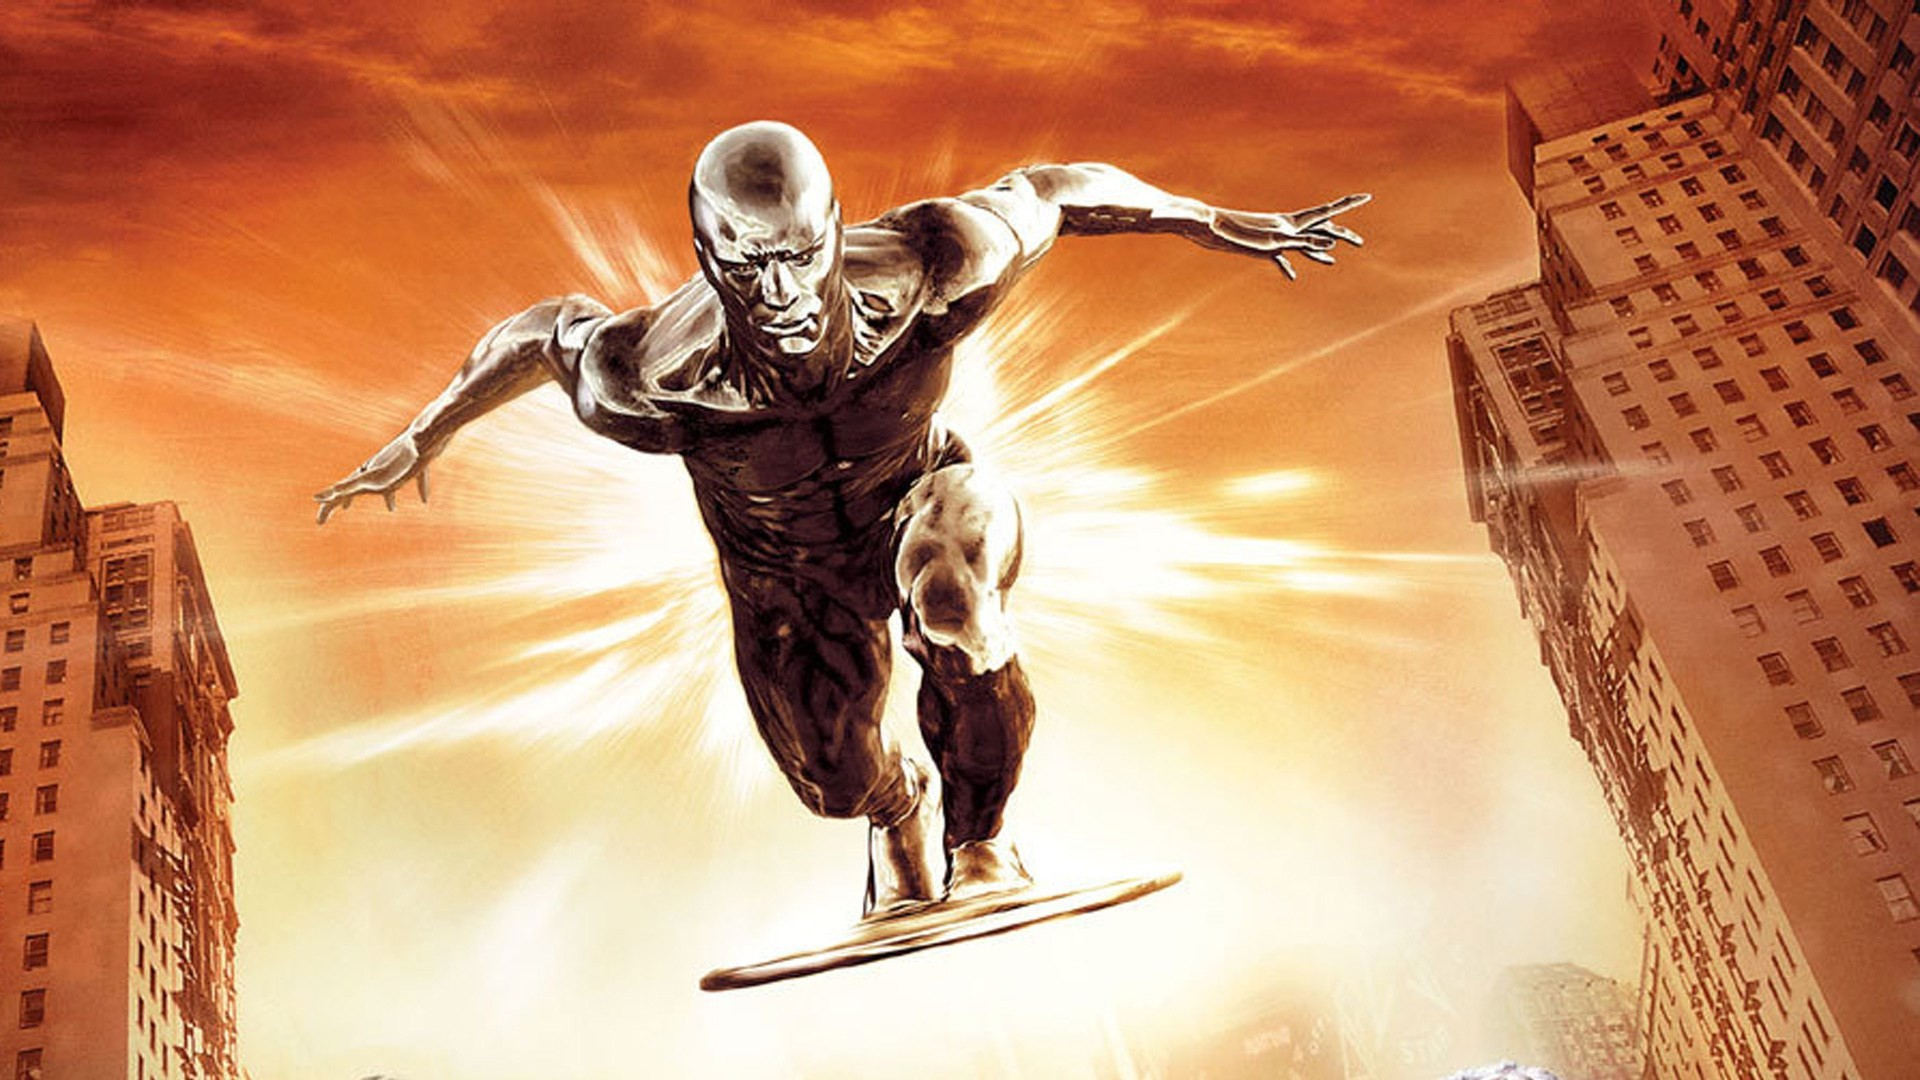 free screensaver wallpapers for fantastic 4 rise of the silver  surfer